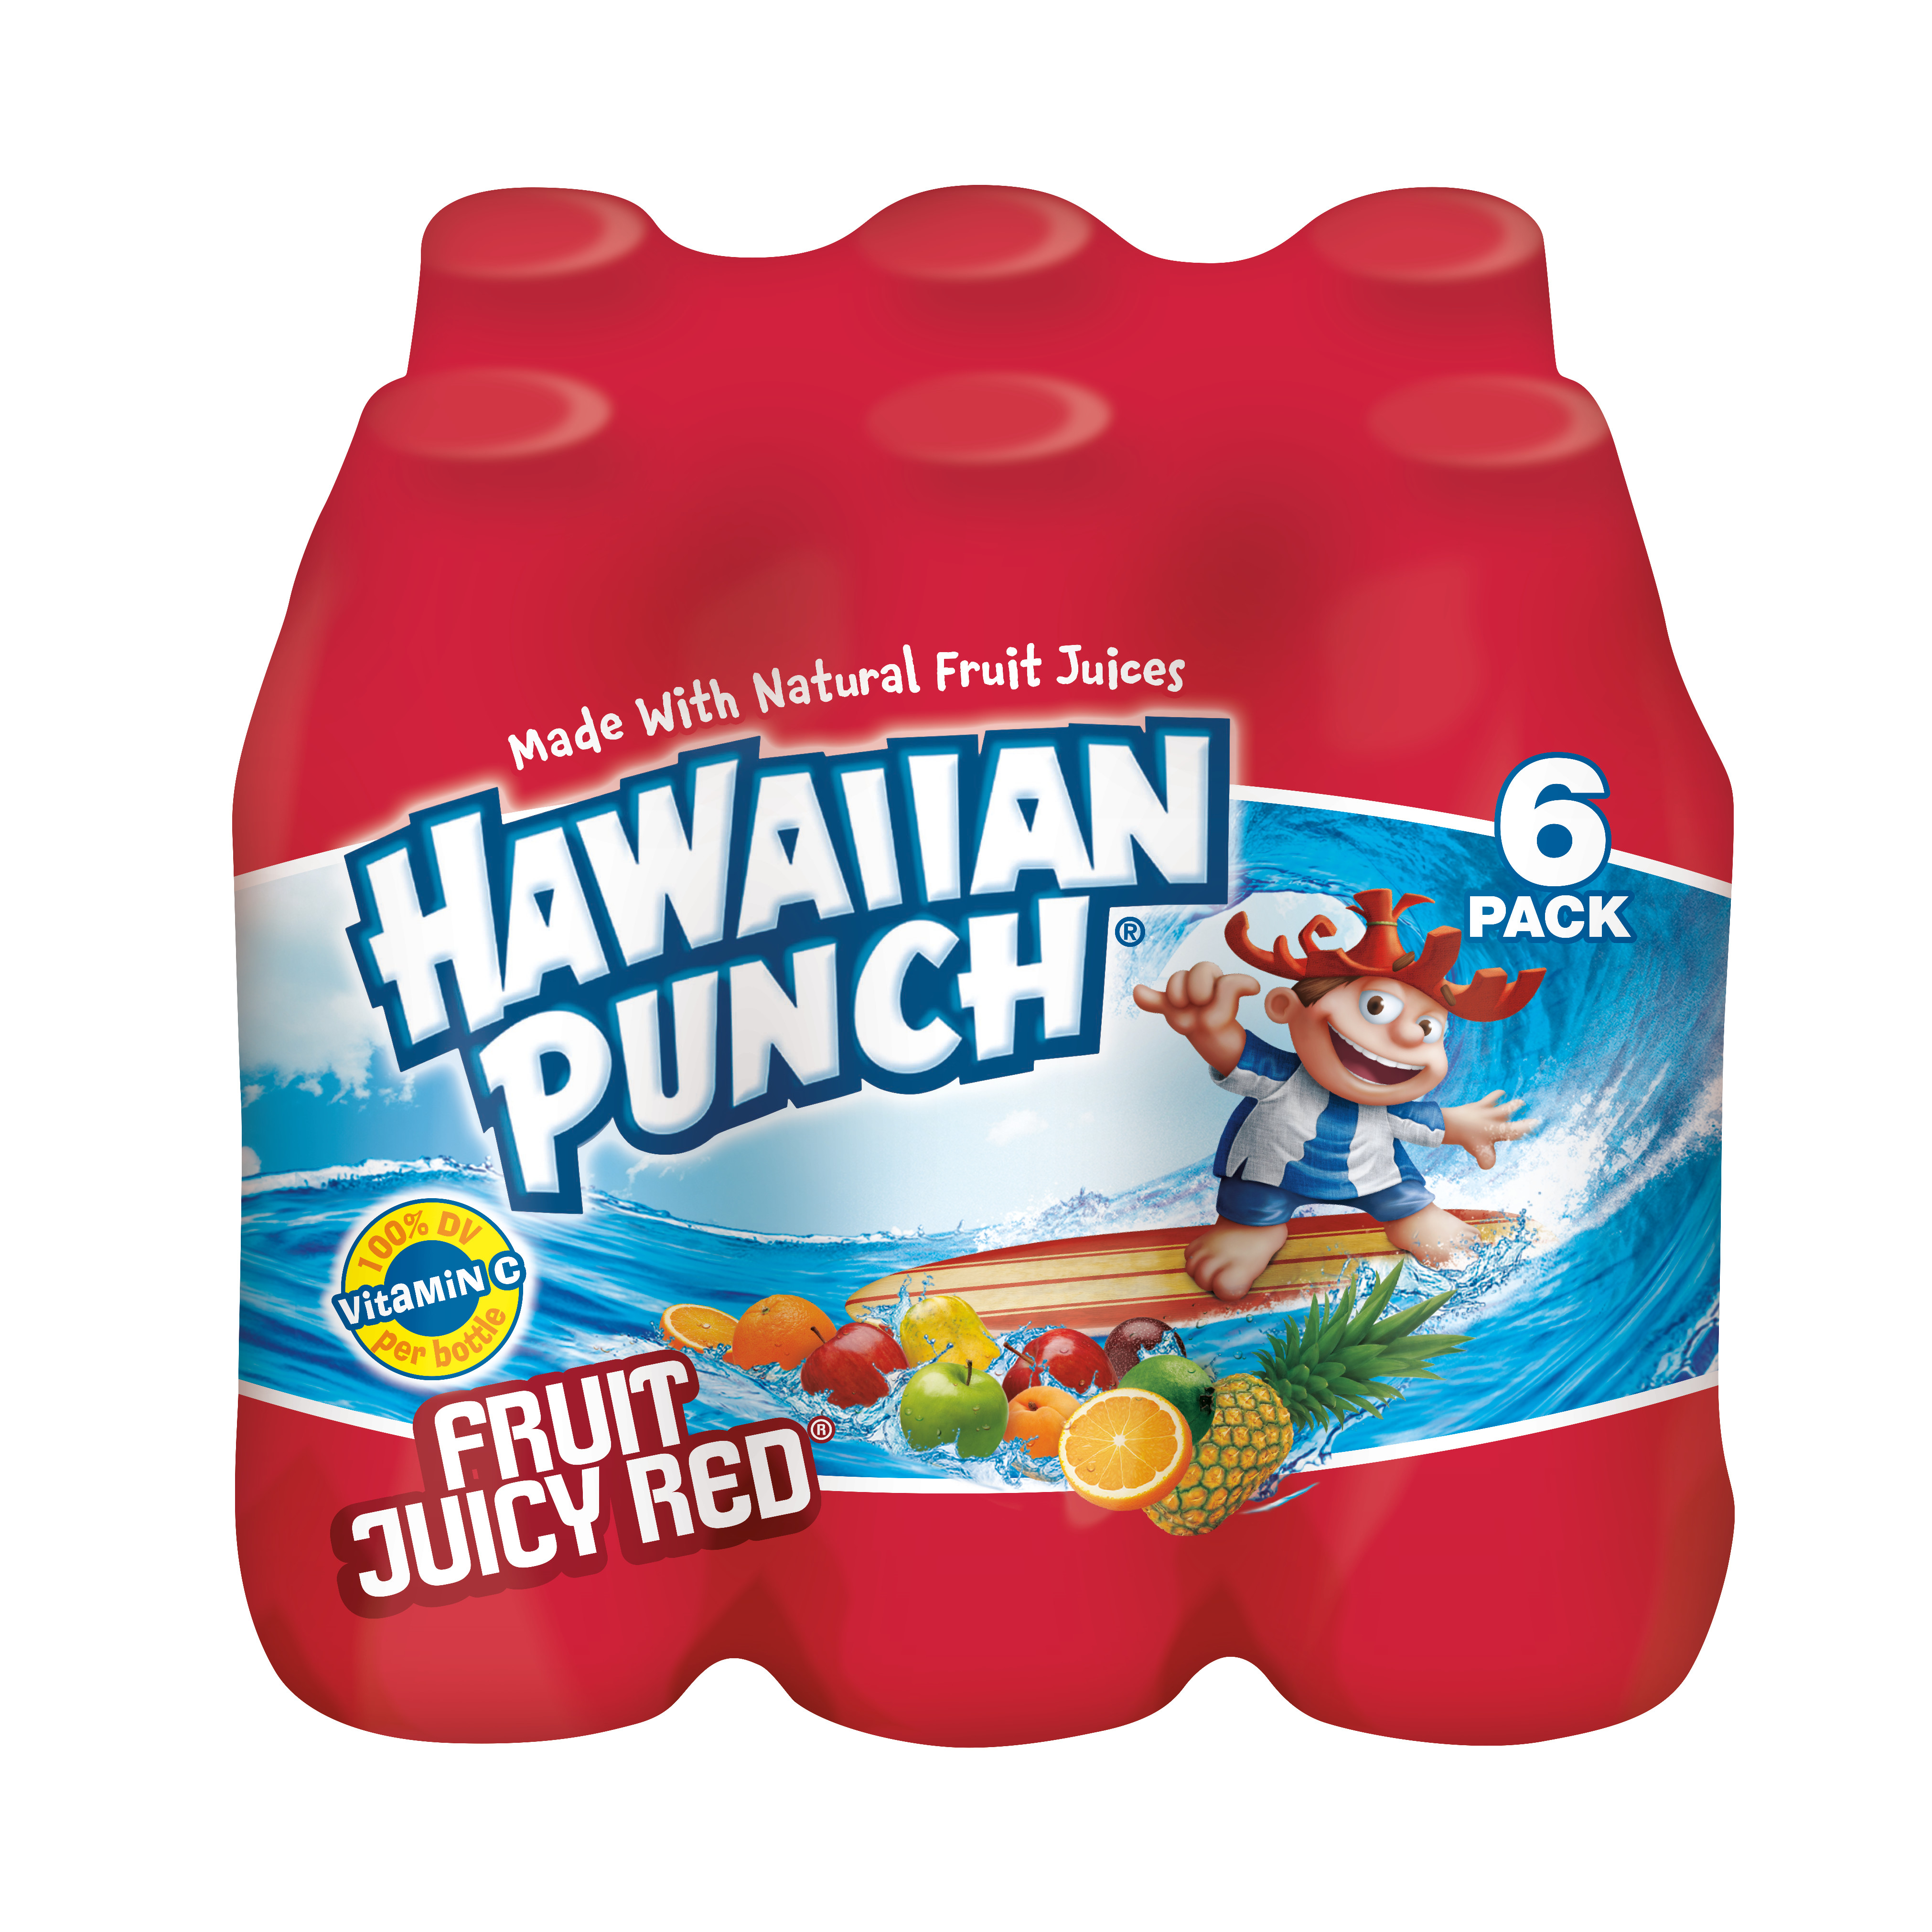 Hawaiian Punch Fruit Juicy Red, 10 fl oz, 6 pack